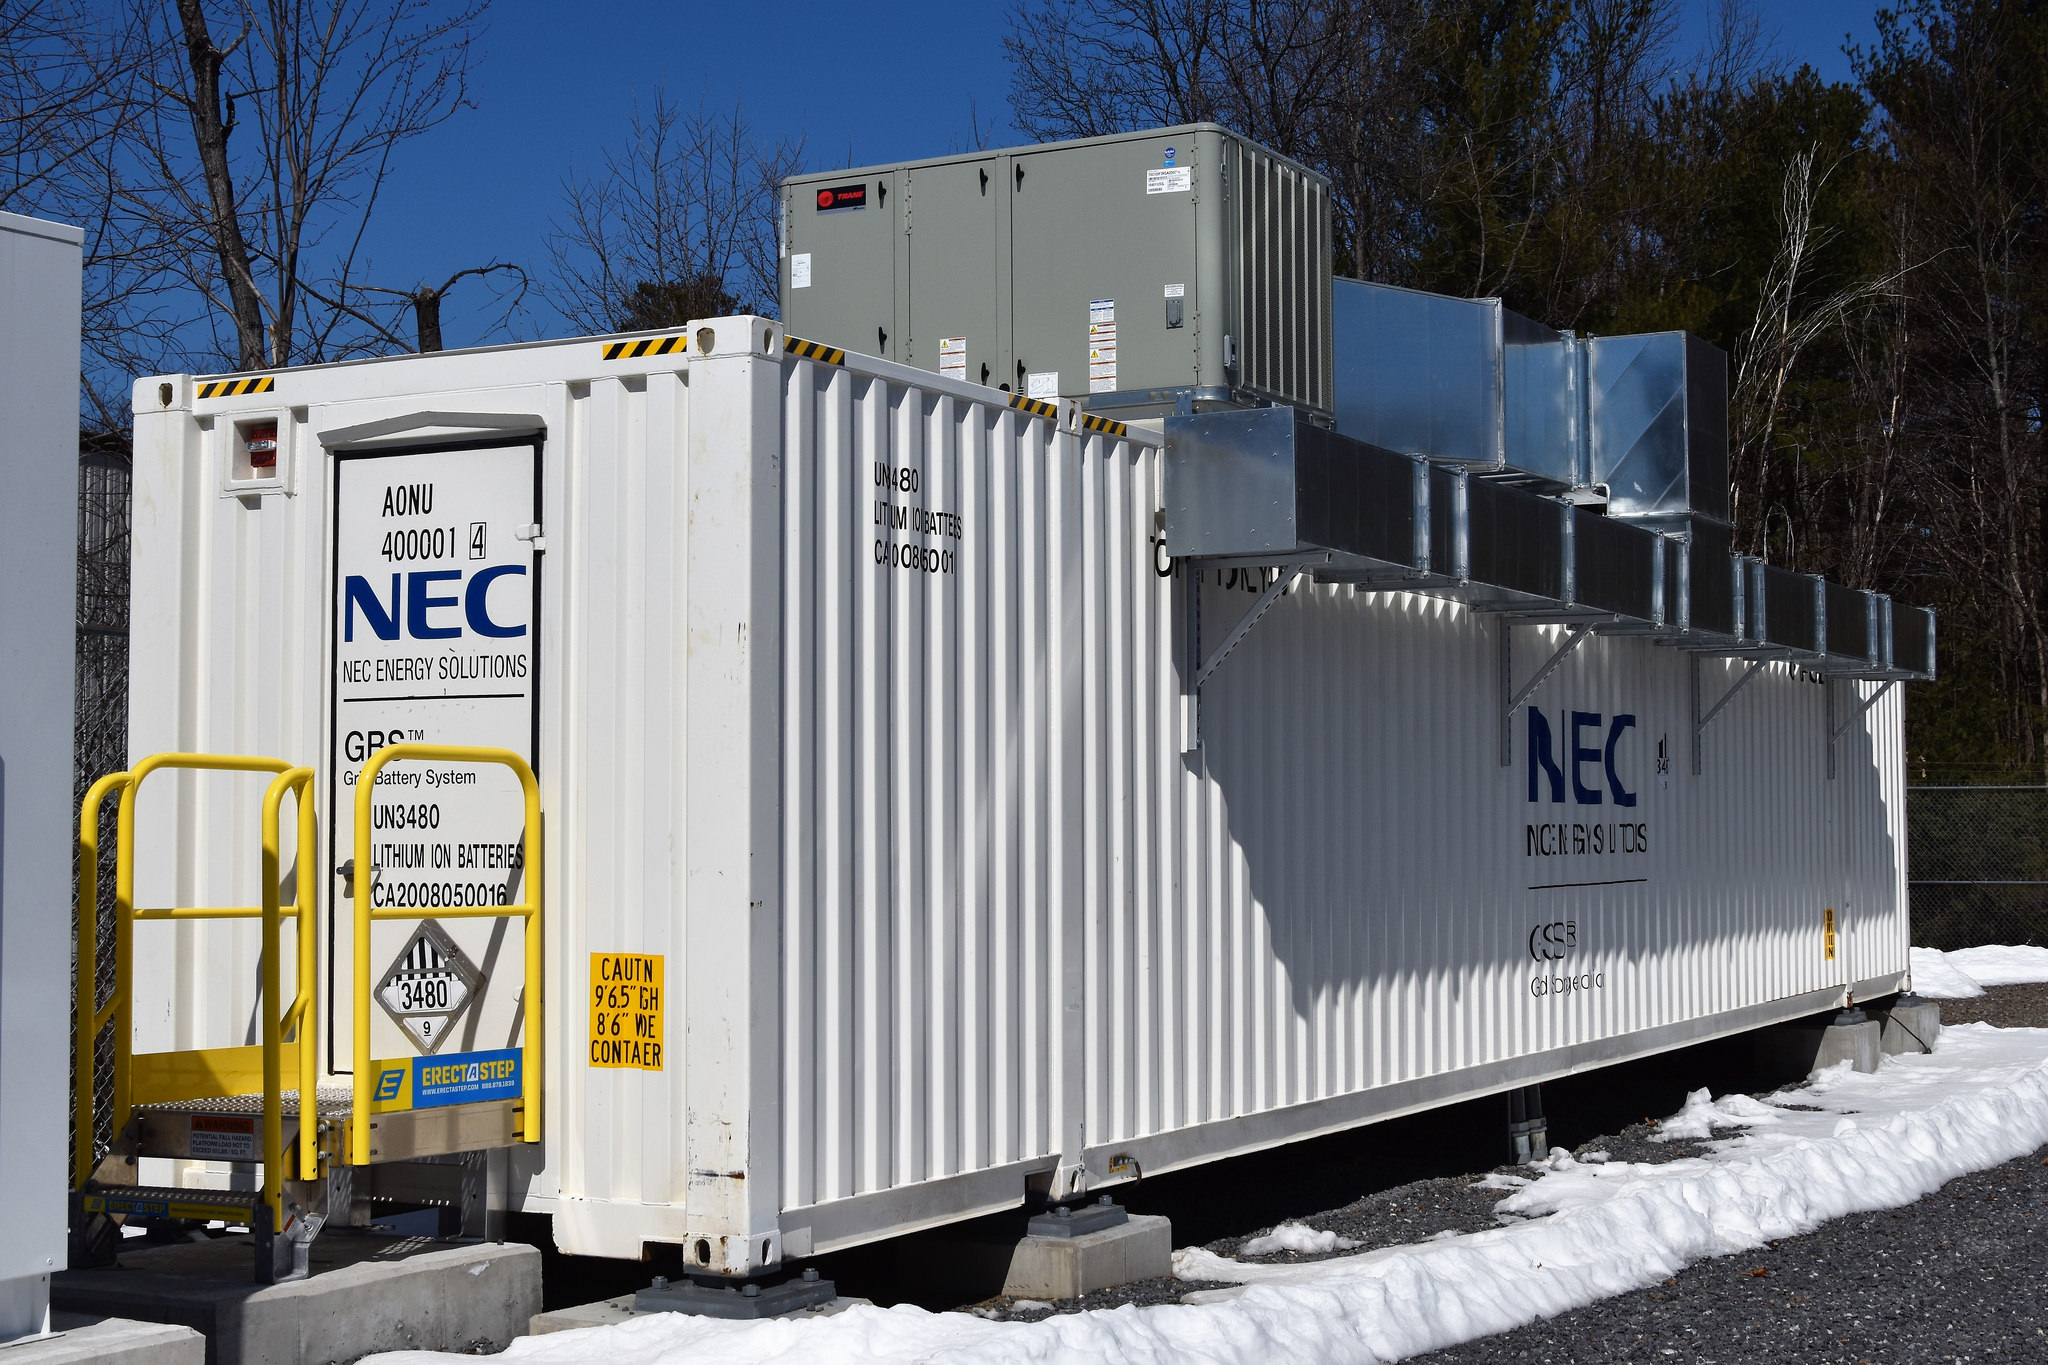 Upcoming Webinar: One Year In – Energy Storage Proves its Worth in Sterling, MA, March 7, 1-2 p.m. ET